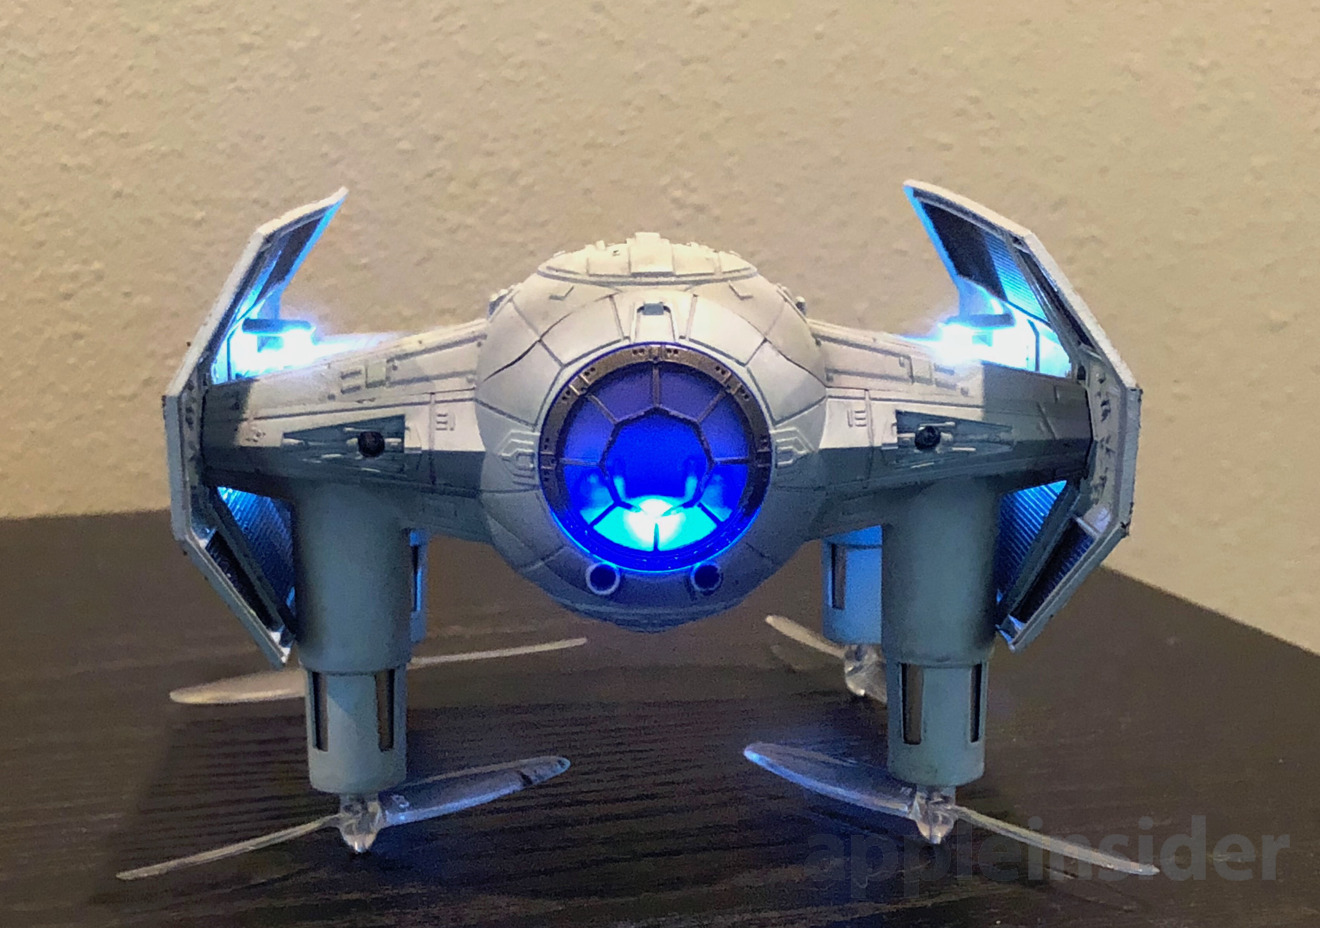 Review May The Force Be With You When Flying Propel S Star Wars Battle Drones